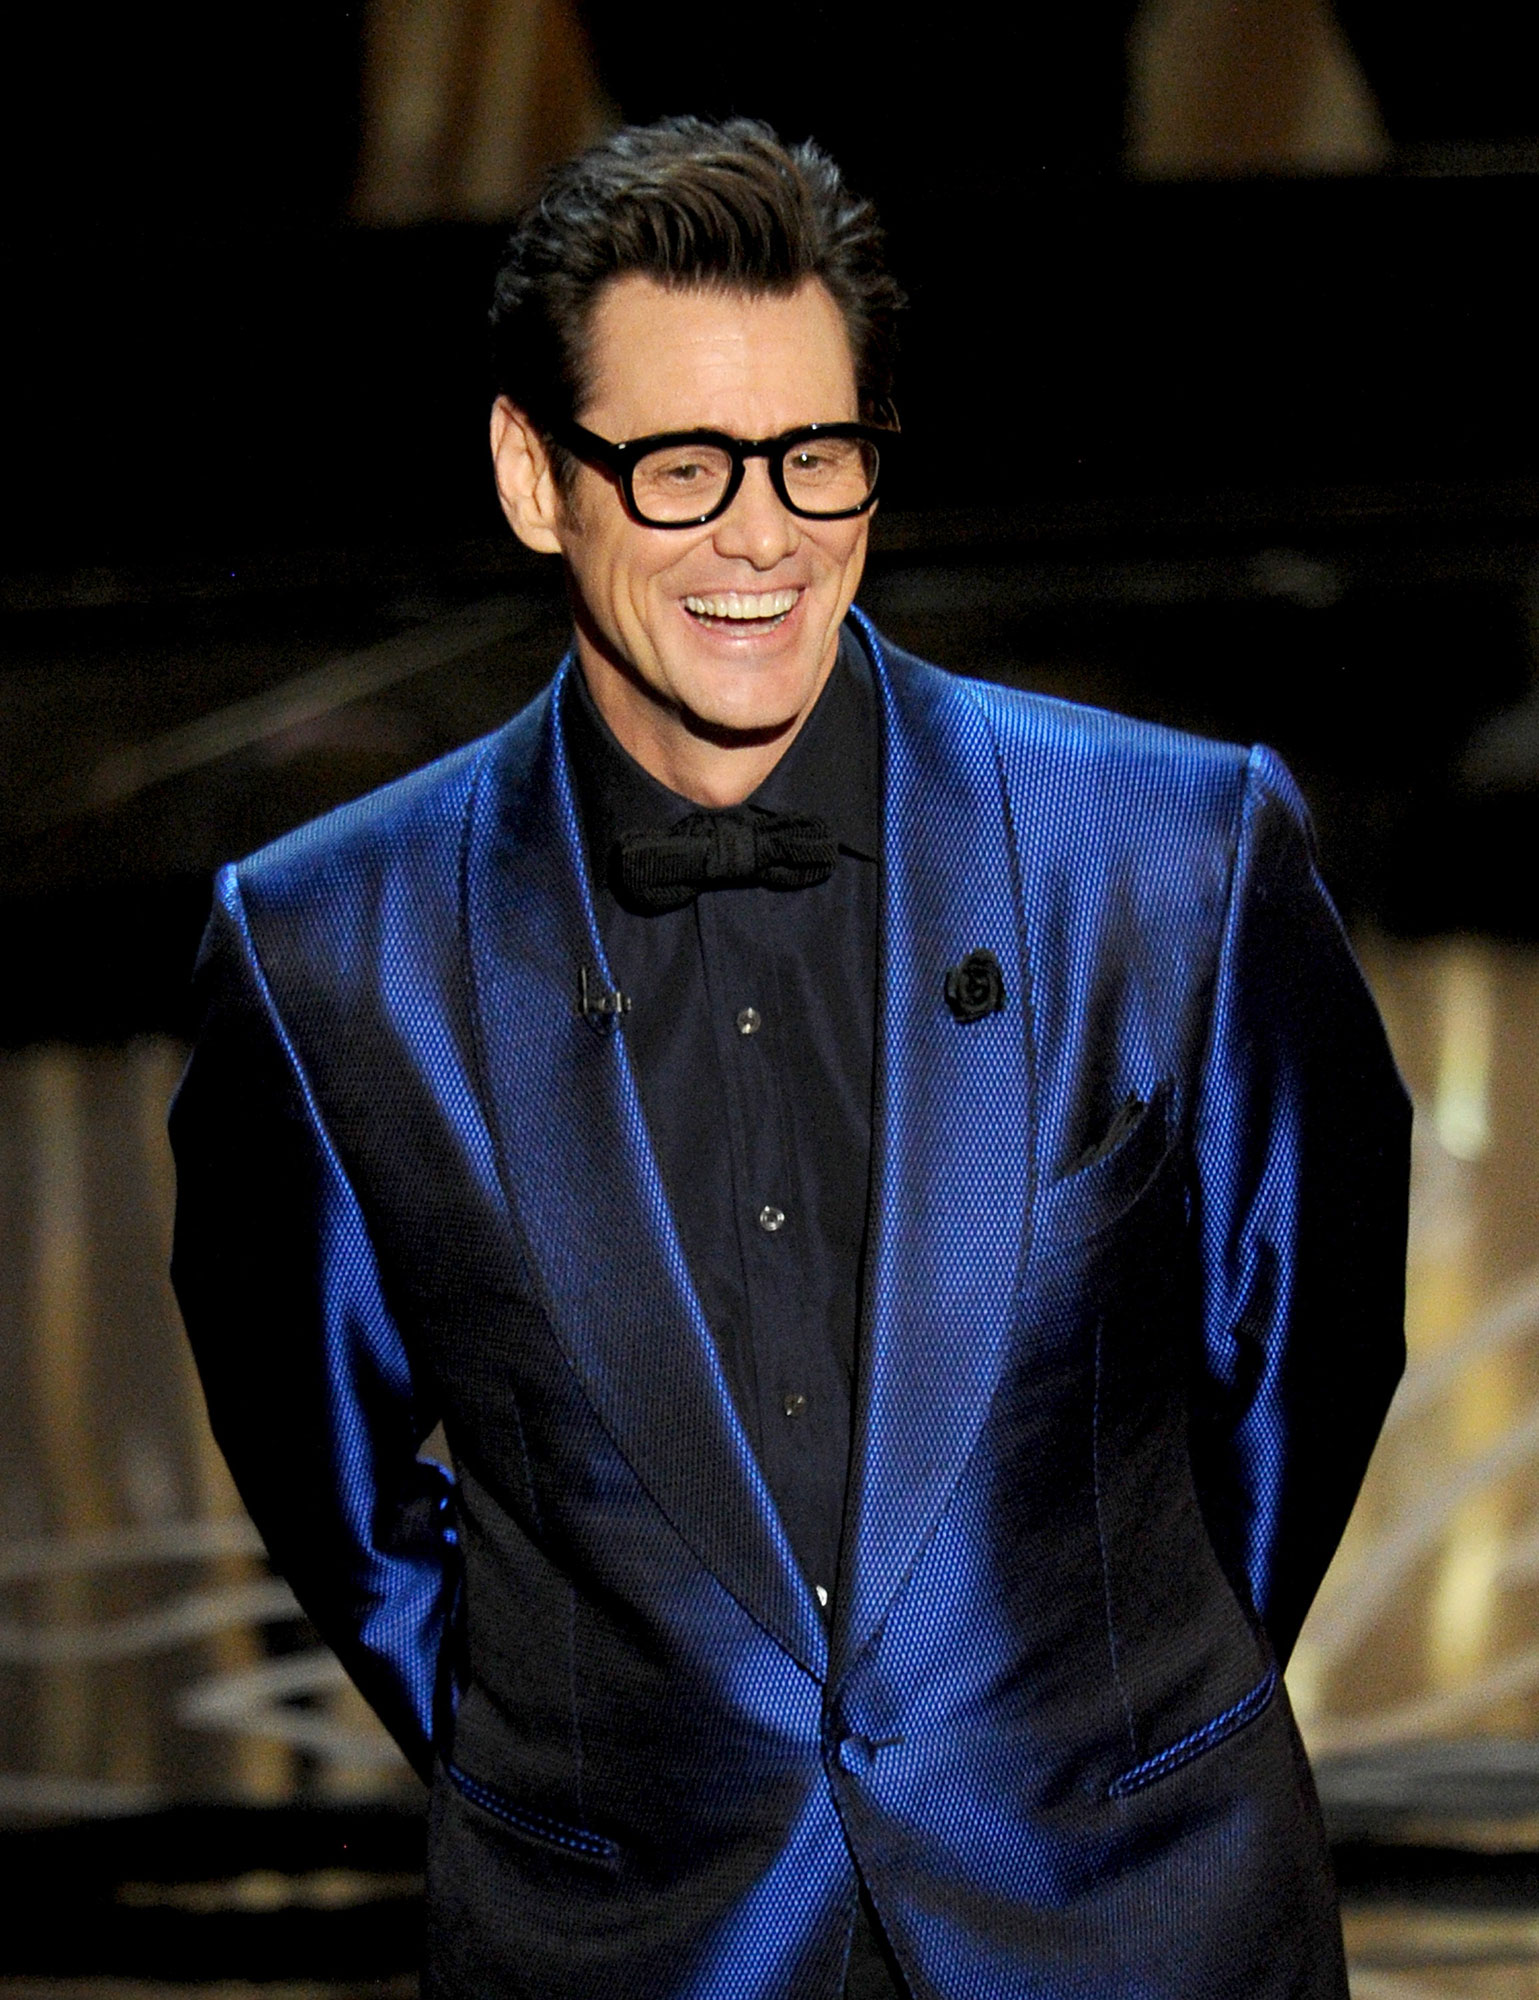 Jim Carrey - Stars Who Have Never Won Oscars - The comedian has been making us laugh on screen for decades — since 1983, to be exact — but his work has never resulted in an Oscar nod, even when taking a turn for the serious ( Eternal Sunshine of the Spotless Mind , anyone?).